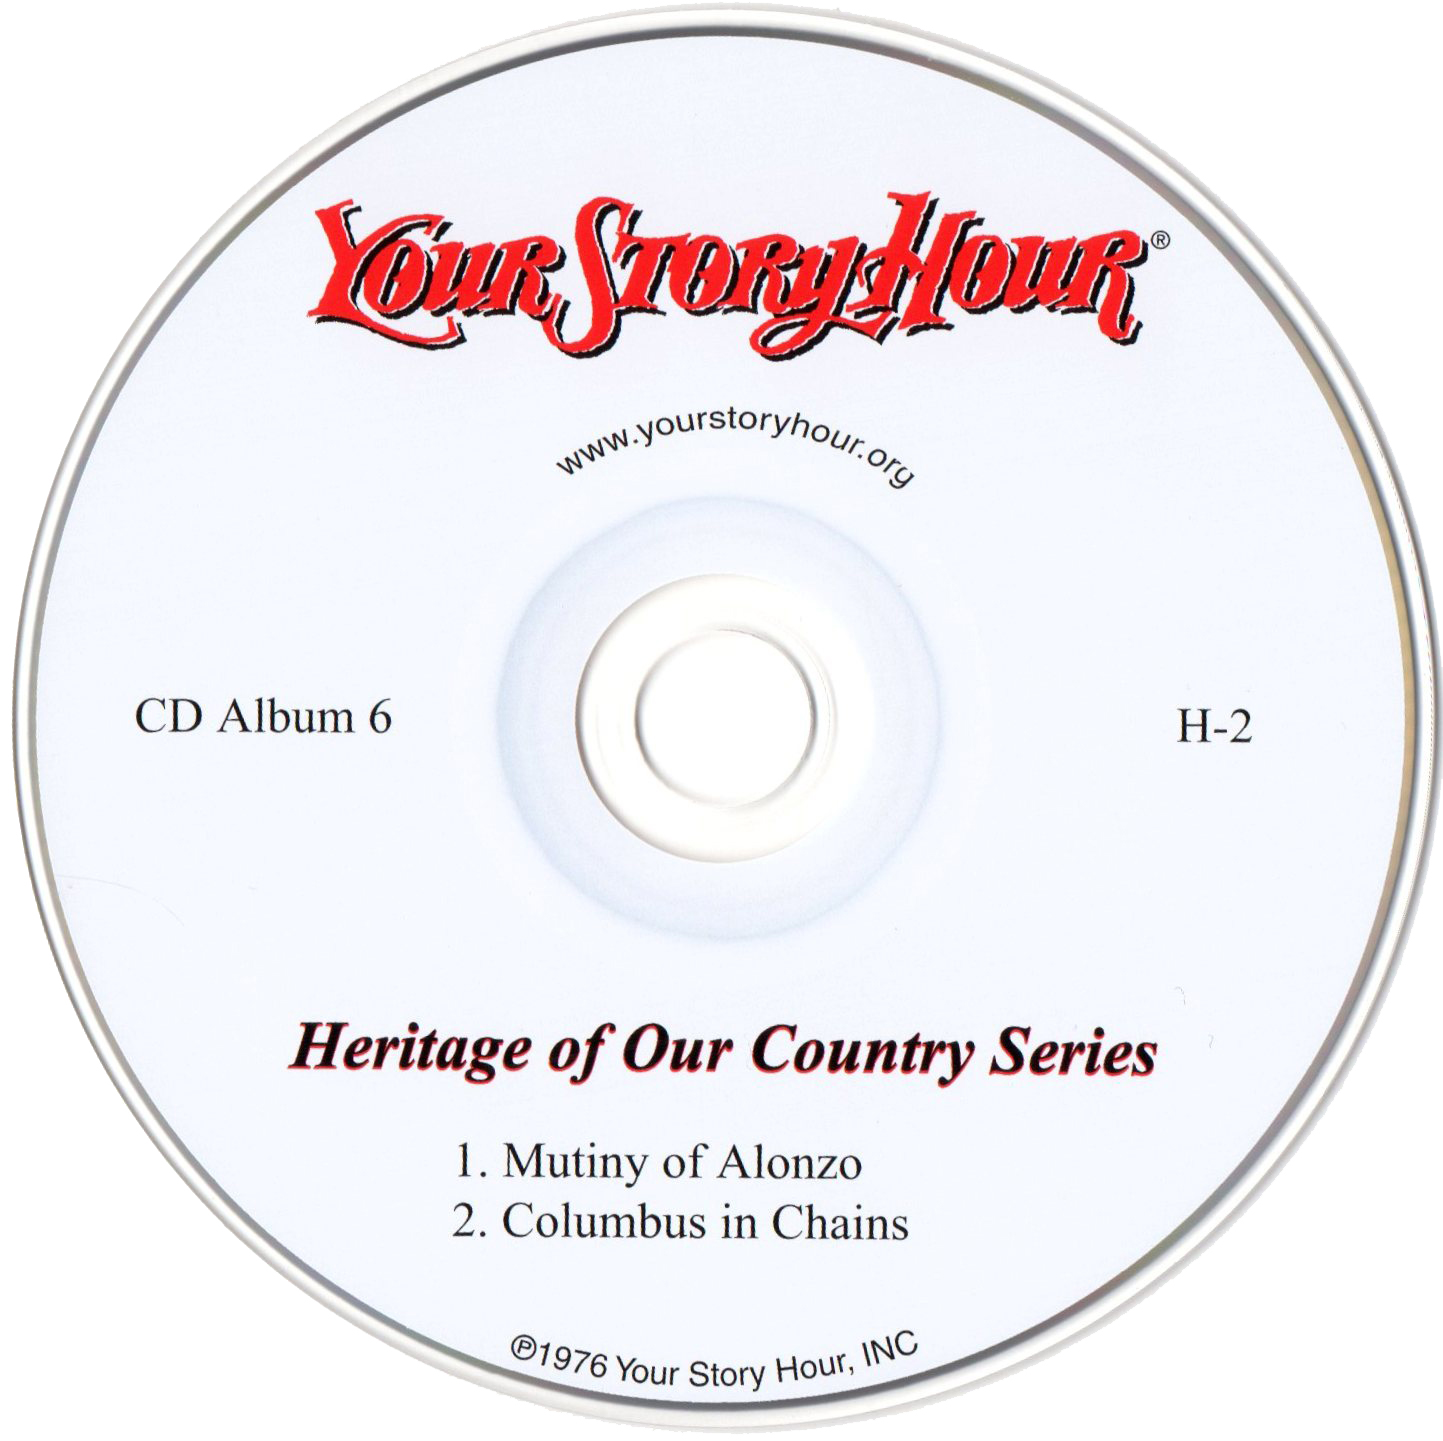 Your Story Hour (H2) CD